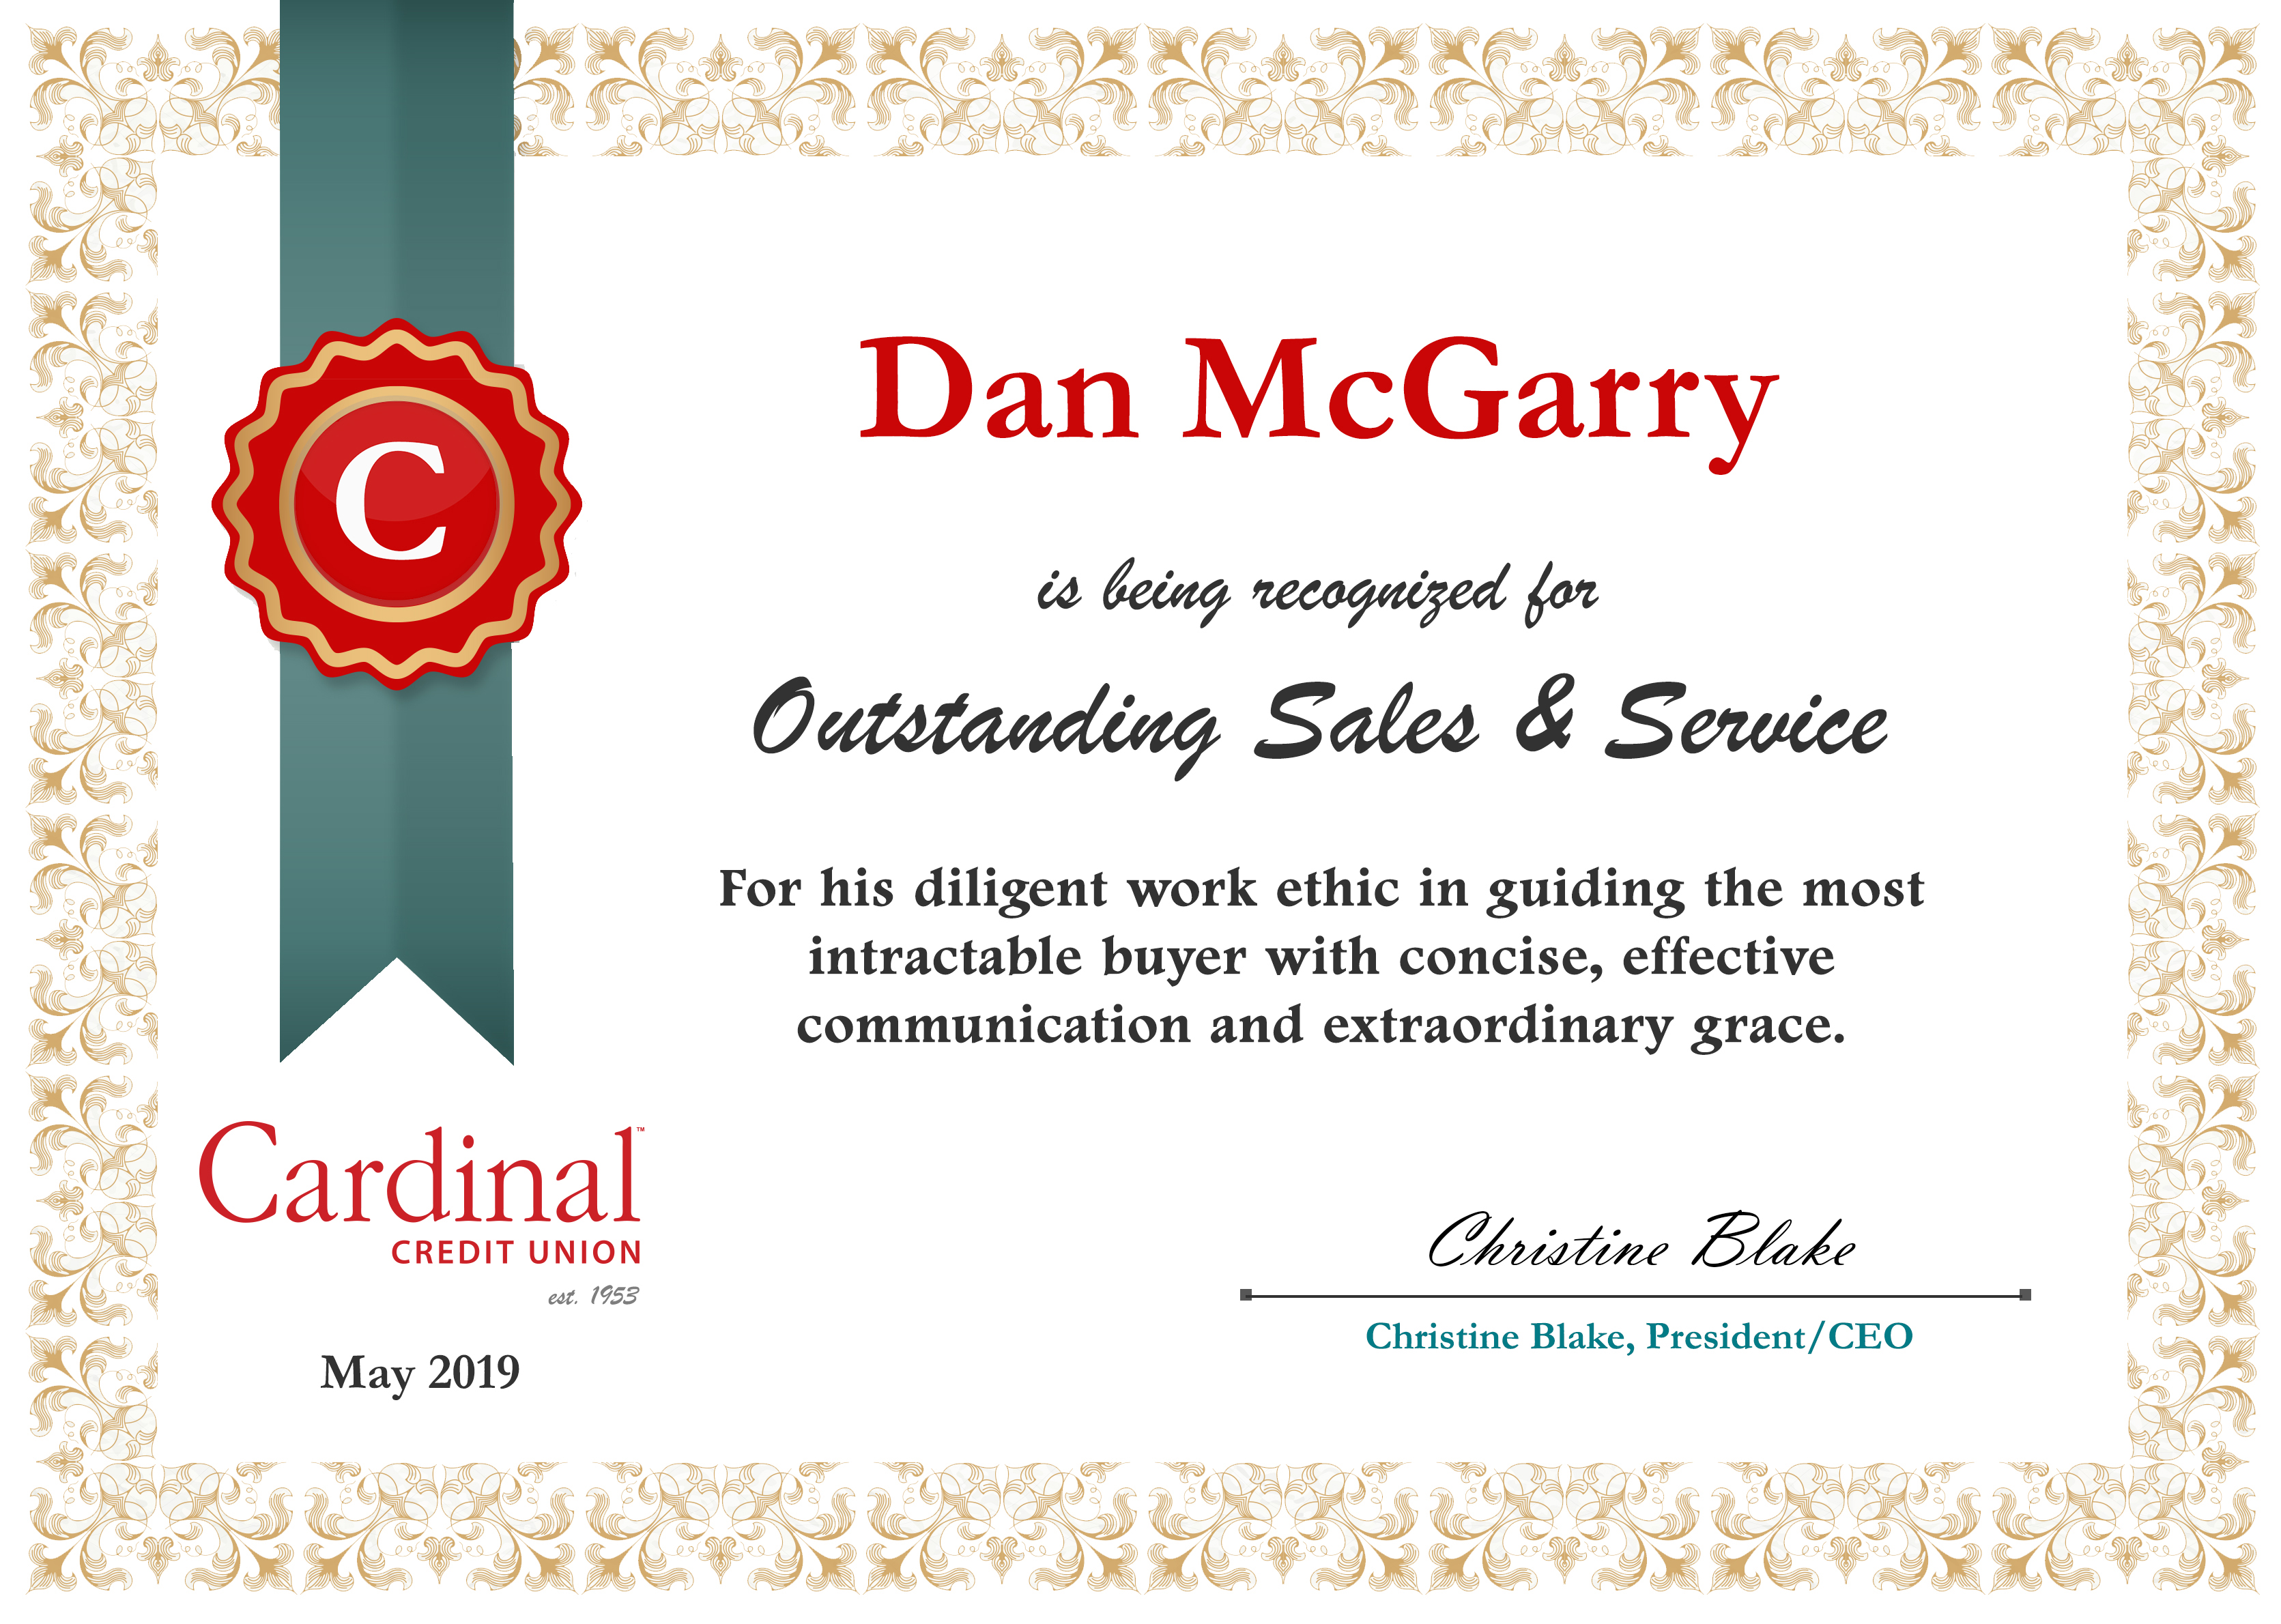 Dan McGarry certificate of recognition for outstanding sales and service